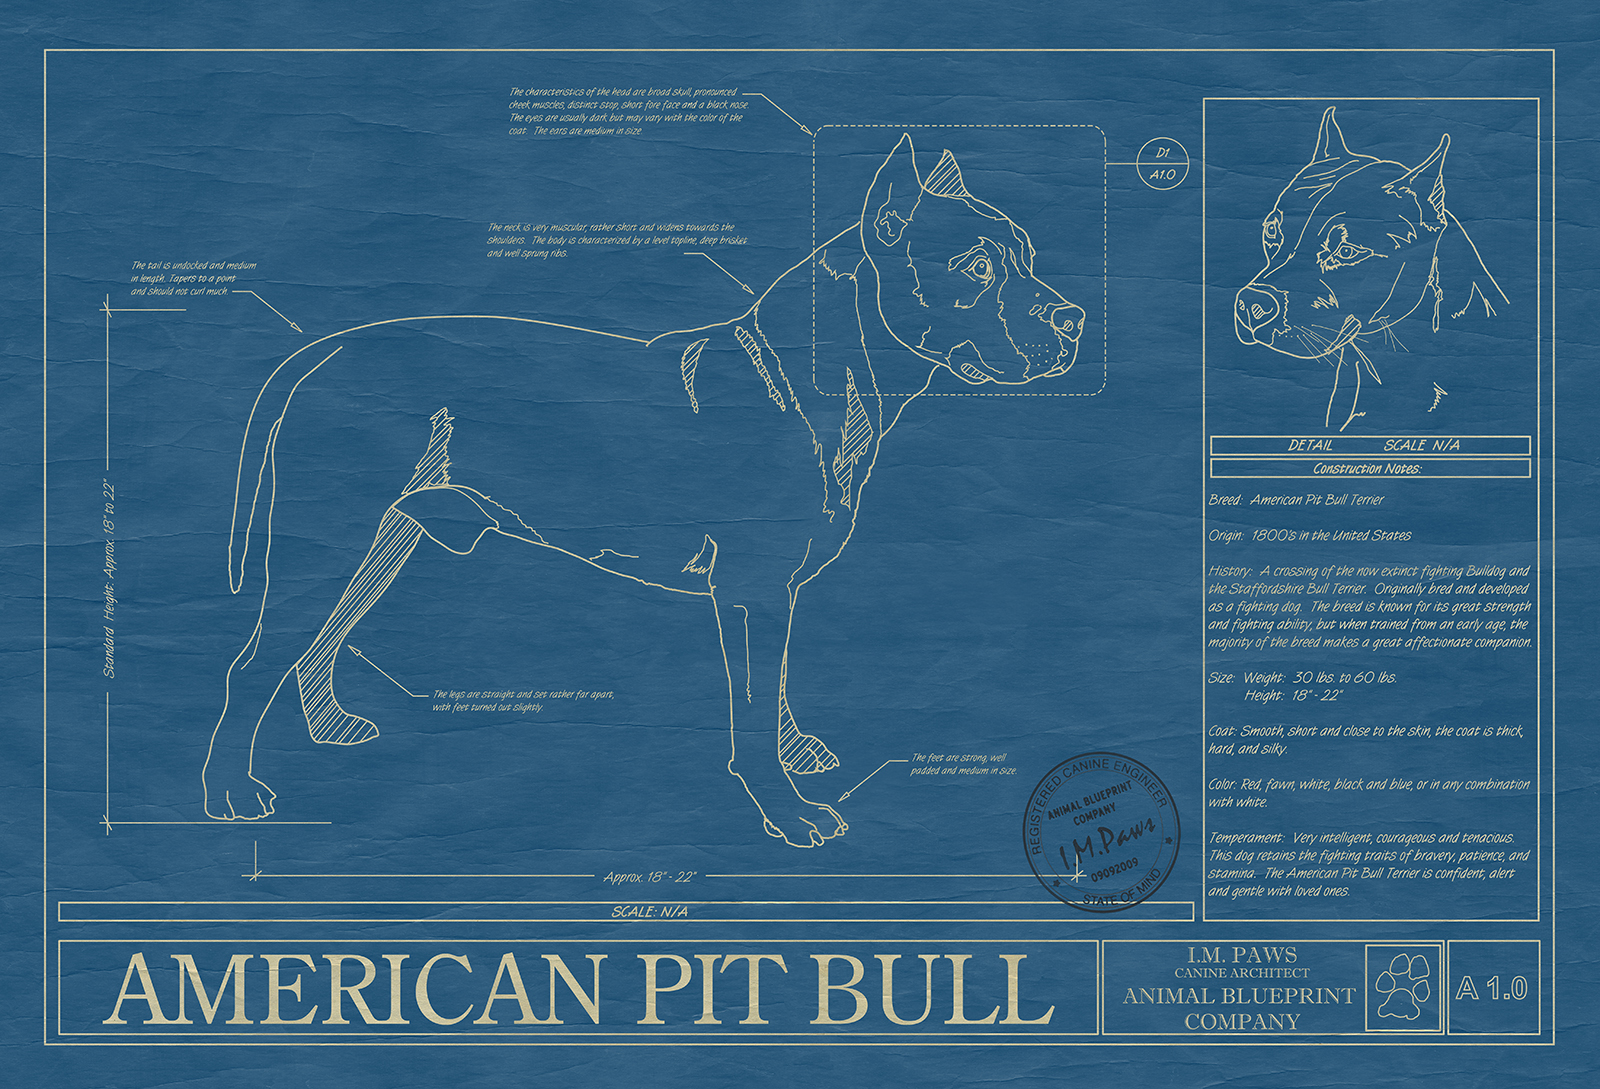 Pit bull american animal blueprint company click image to enlarge malvernweather Gallery